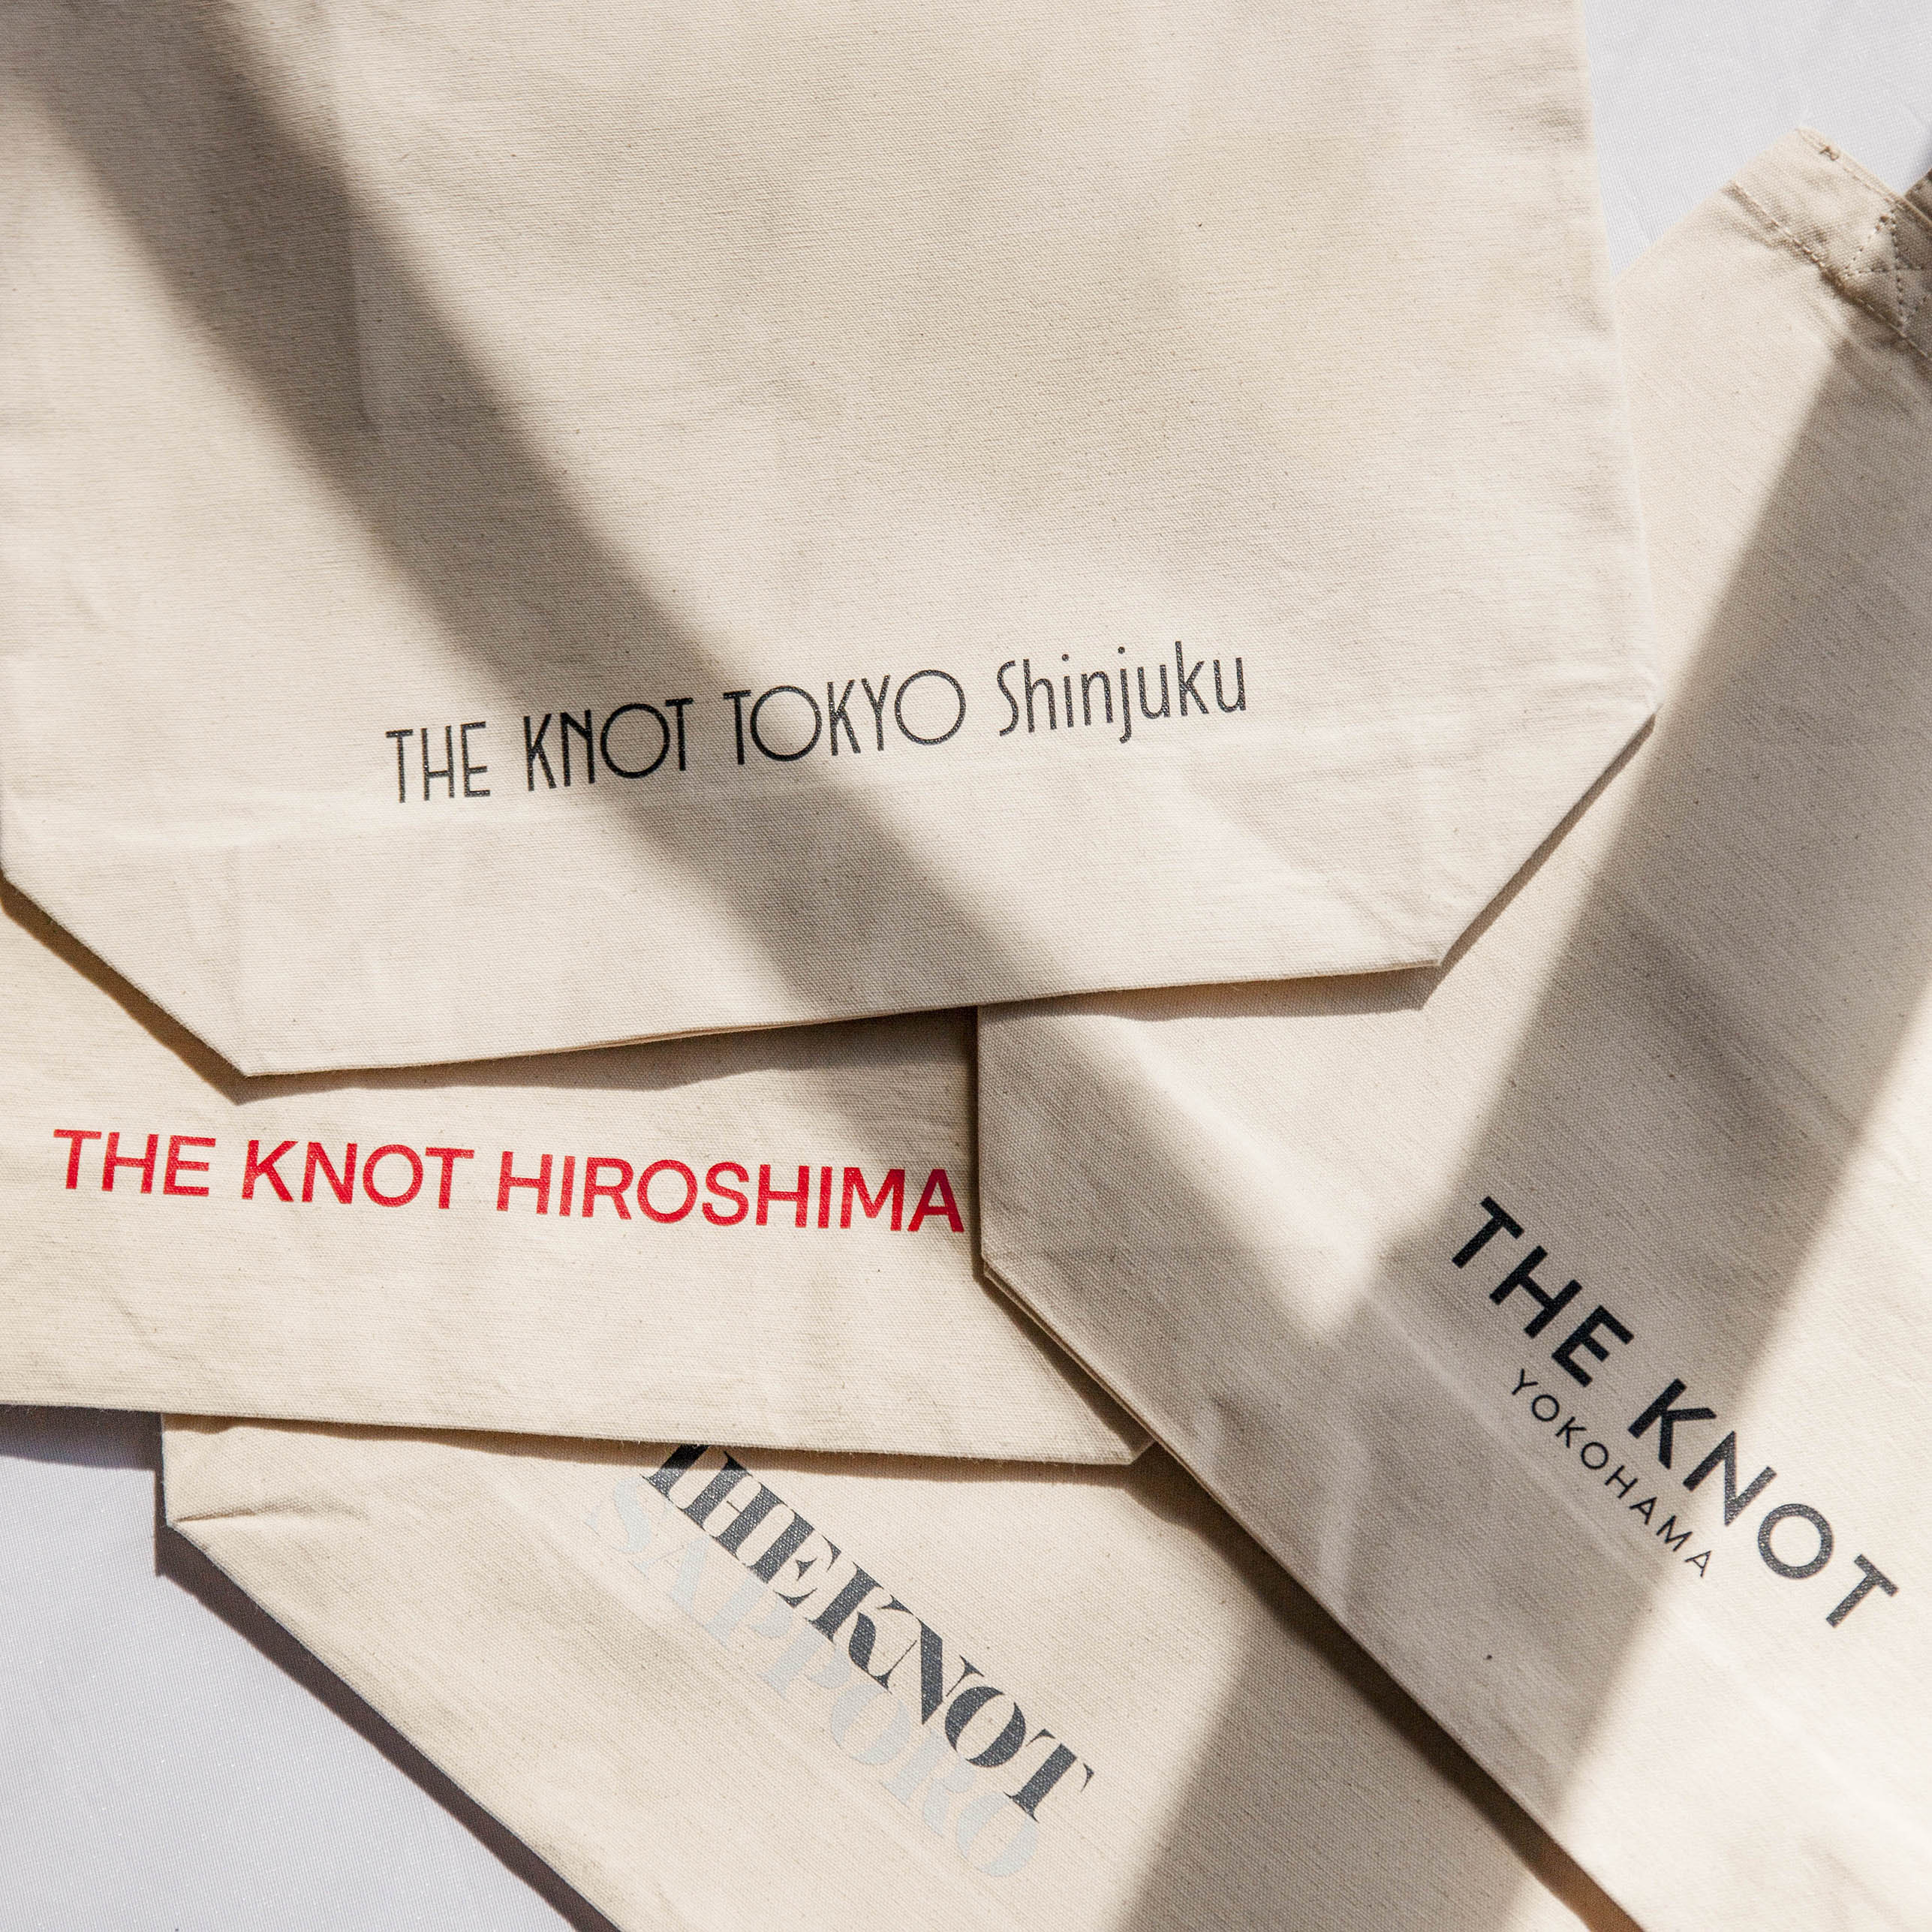 THE KNOTトート